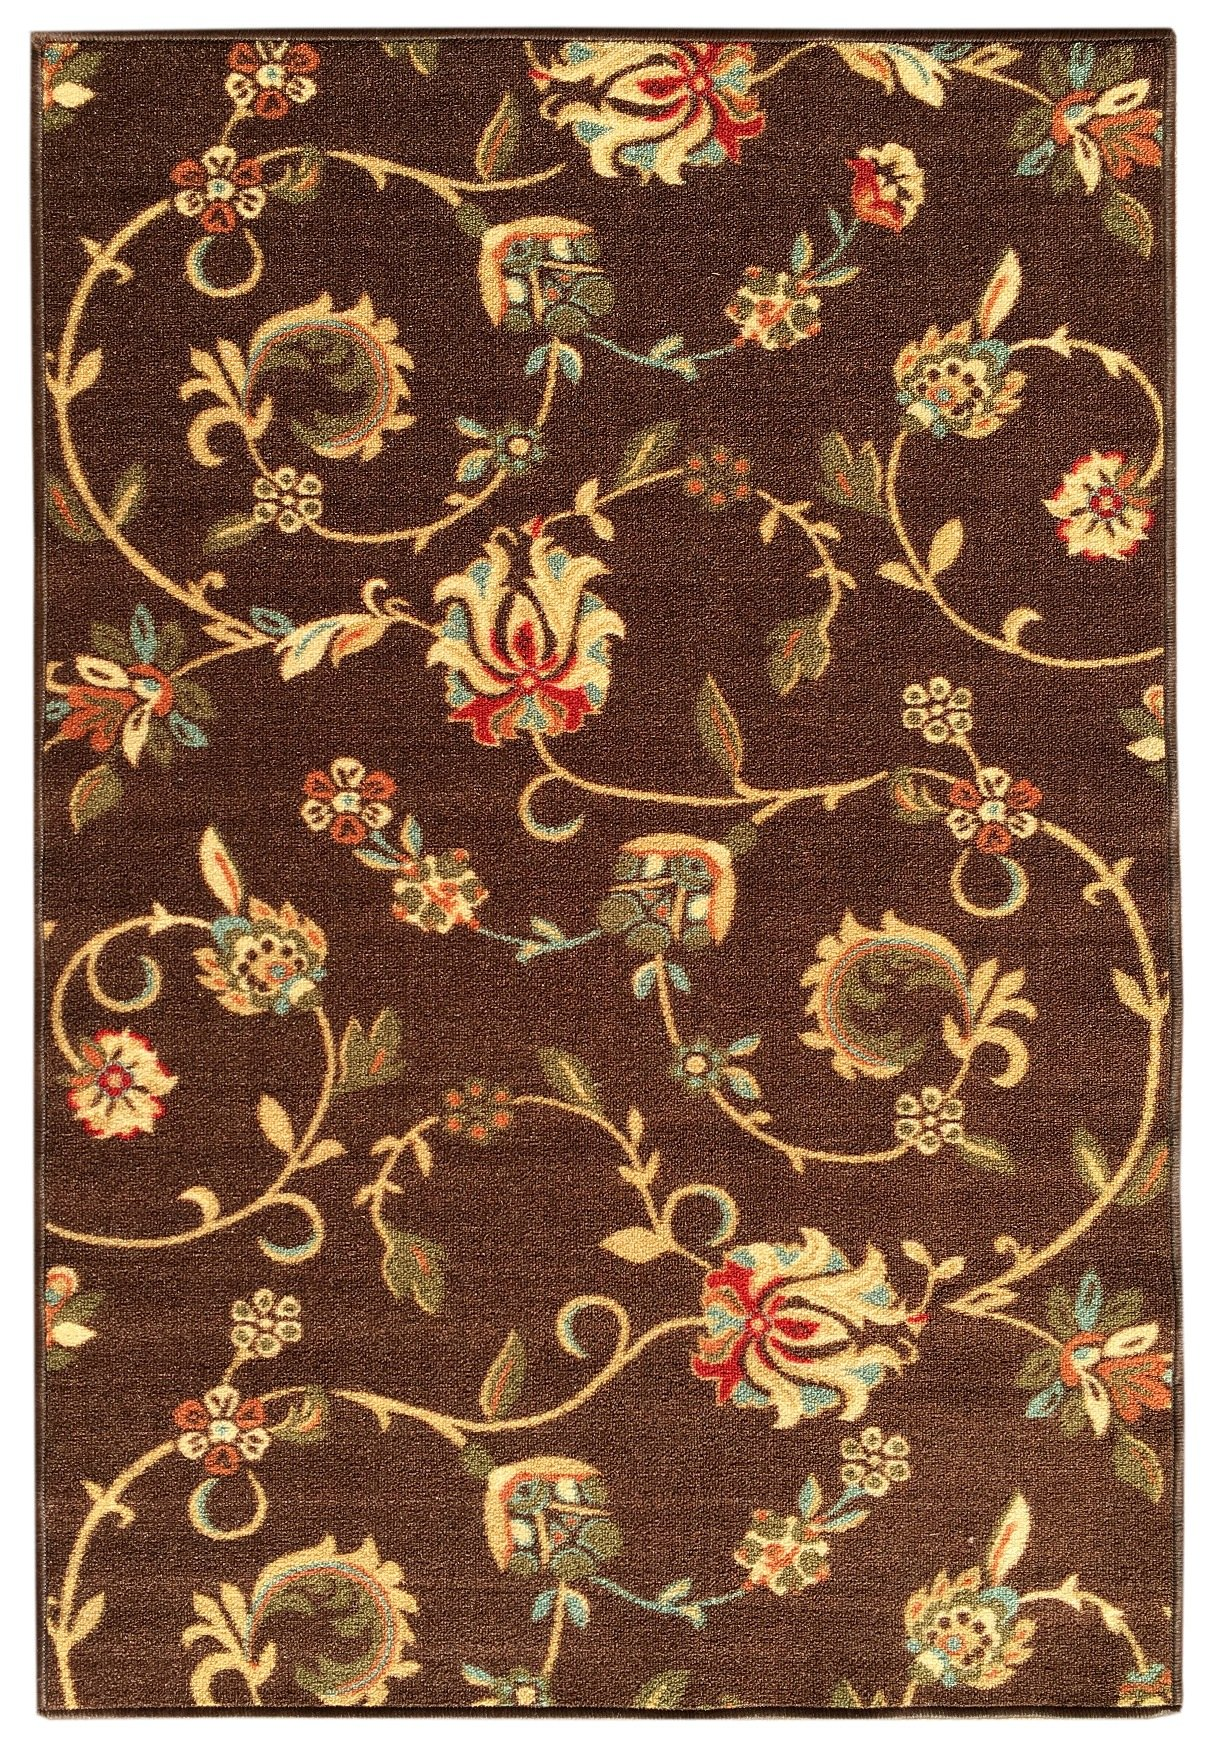 Kapaqua Rubber Backed 3'4'' x 5' BROWN Floral Area Rug Non-Slip - Living, Dining, Room, Pet & Kitchen Rug by Kapaqua